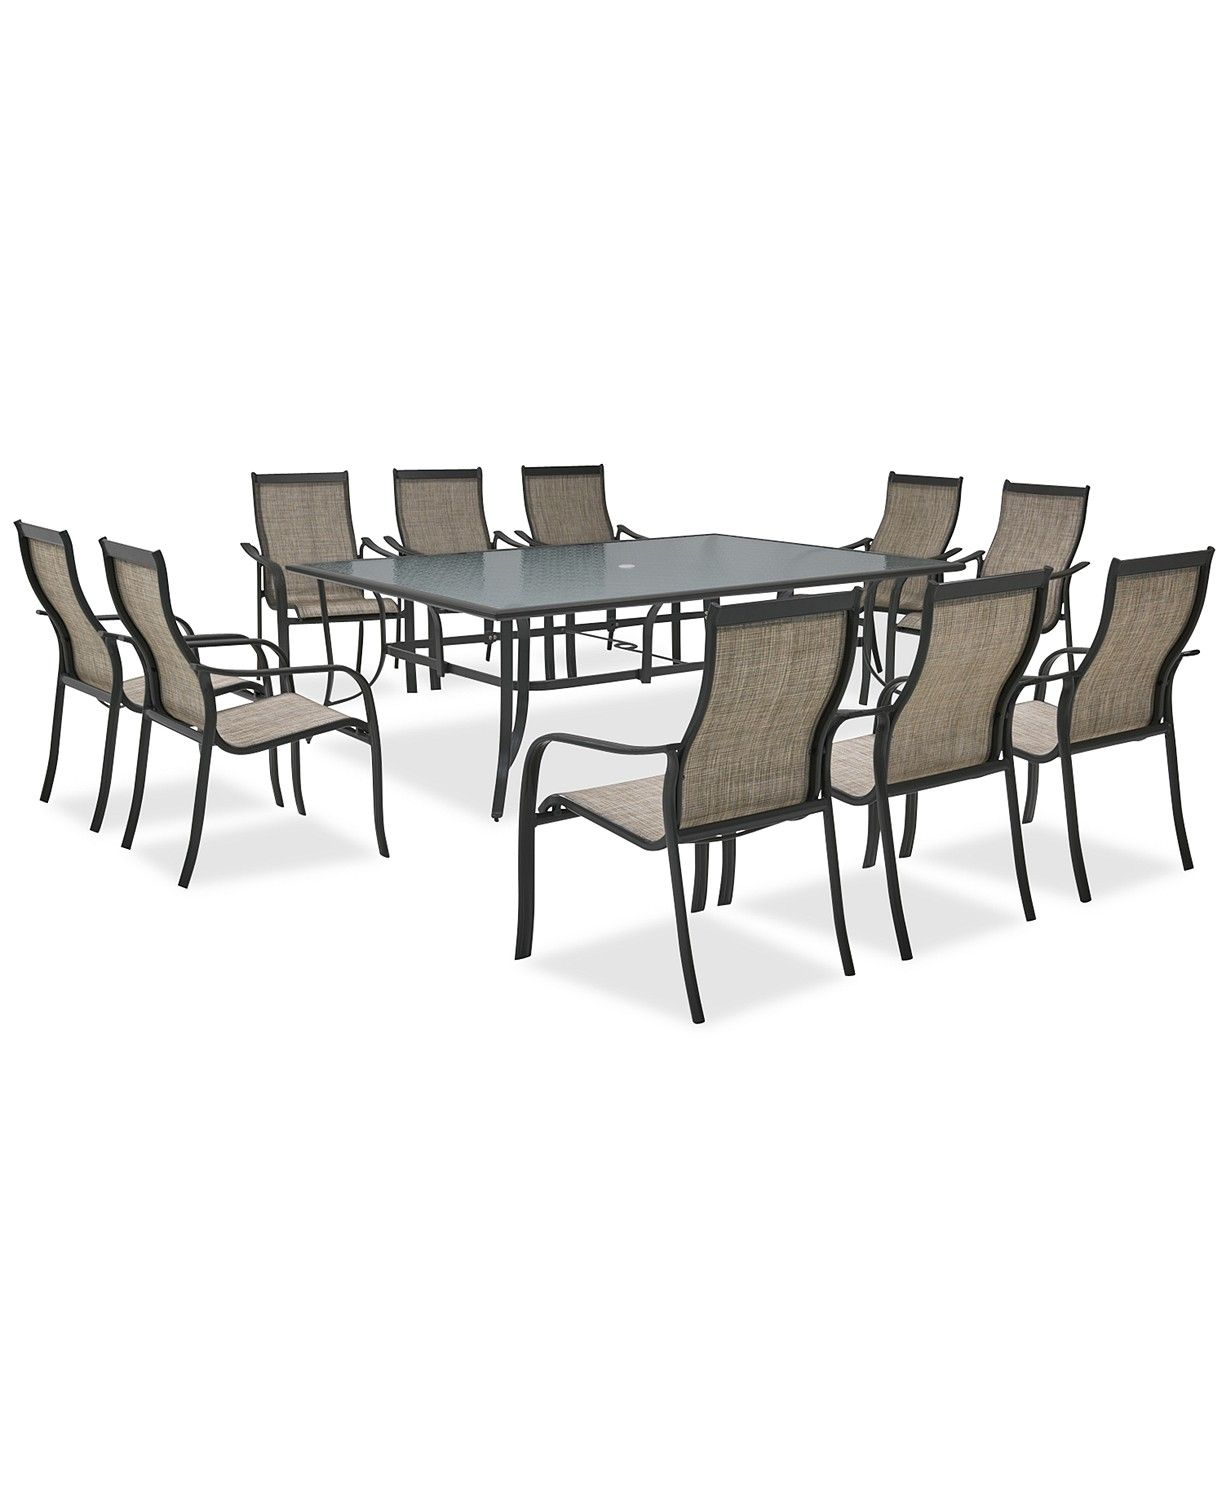 Furniture Reyna Outdoor Aluminum 11 Pc Dining Set 84 X 60 Dining Table And 10 Dining Chairs Created For Macy S Glass Table Set Dining Table Dining Set